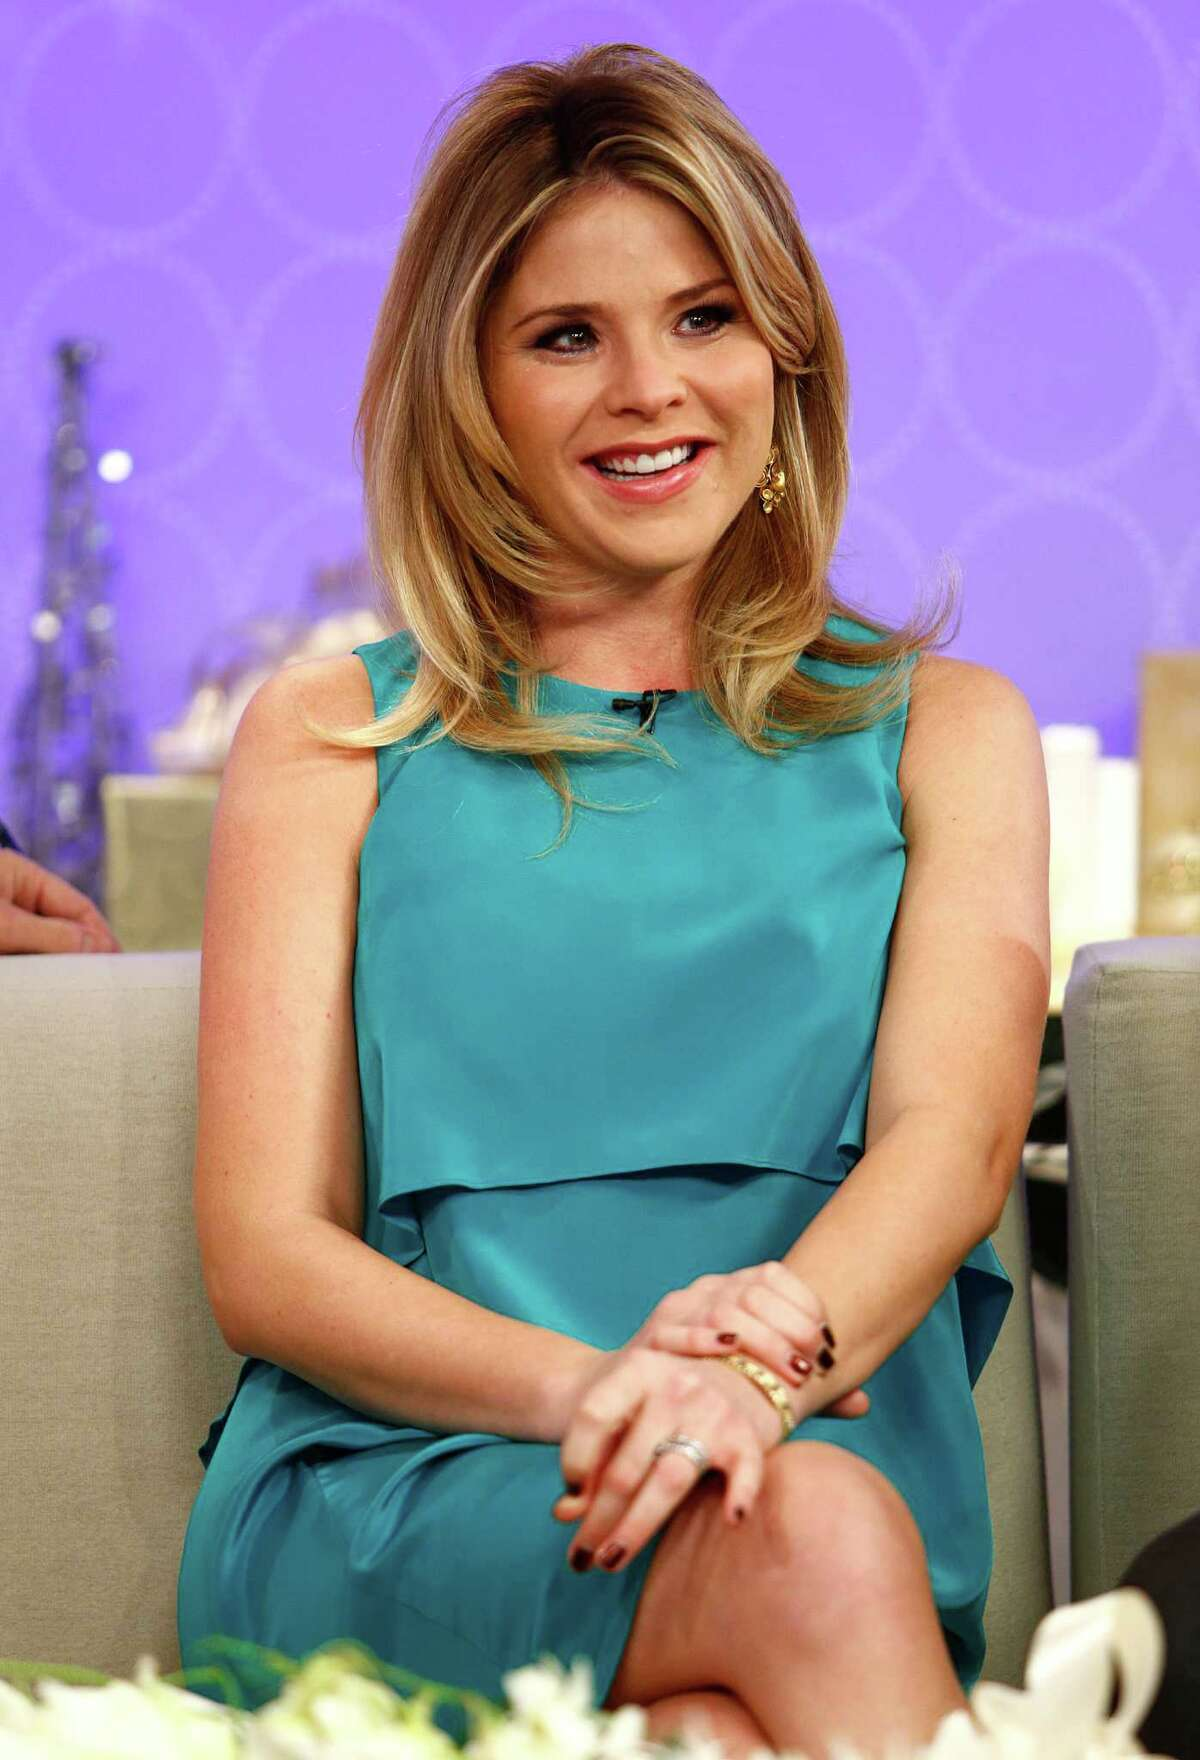 Daughter of former president, George W. Bush, Jenna Bush is an NBC